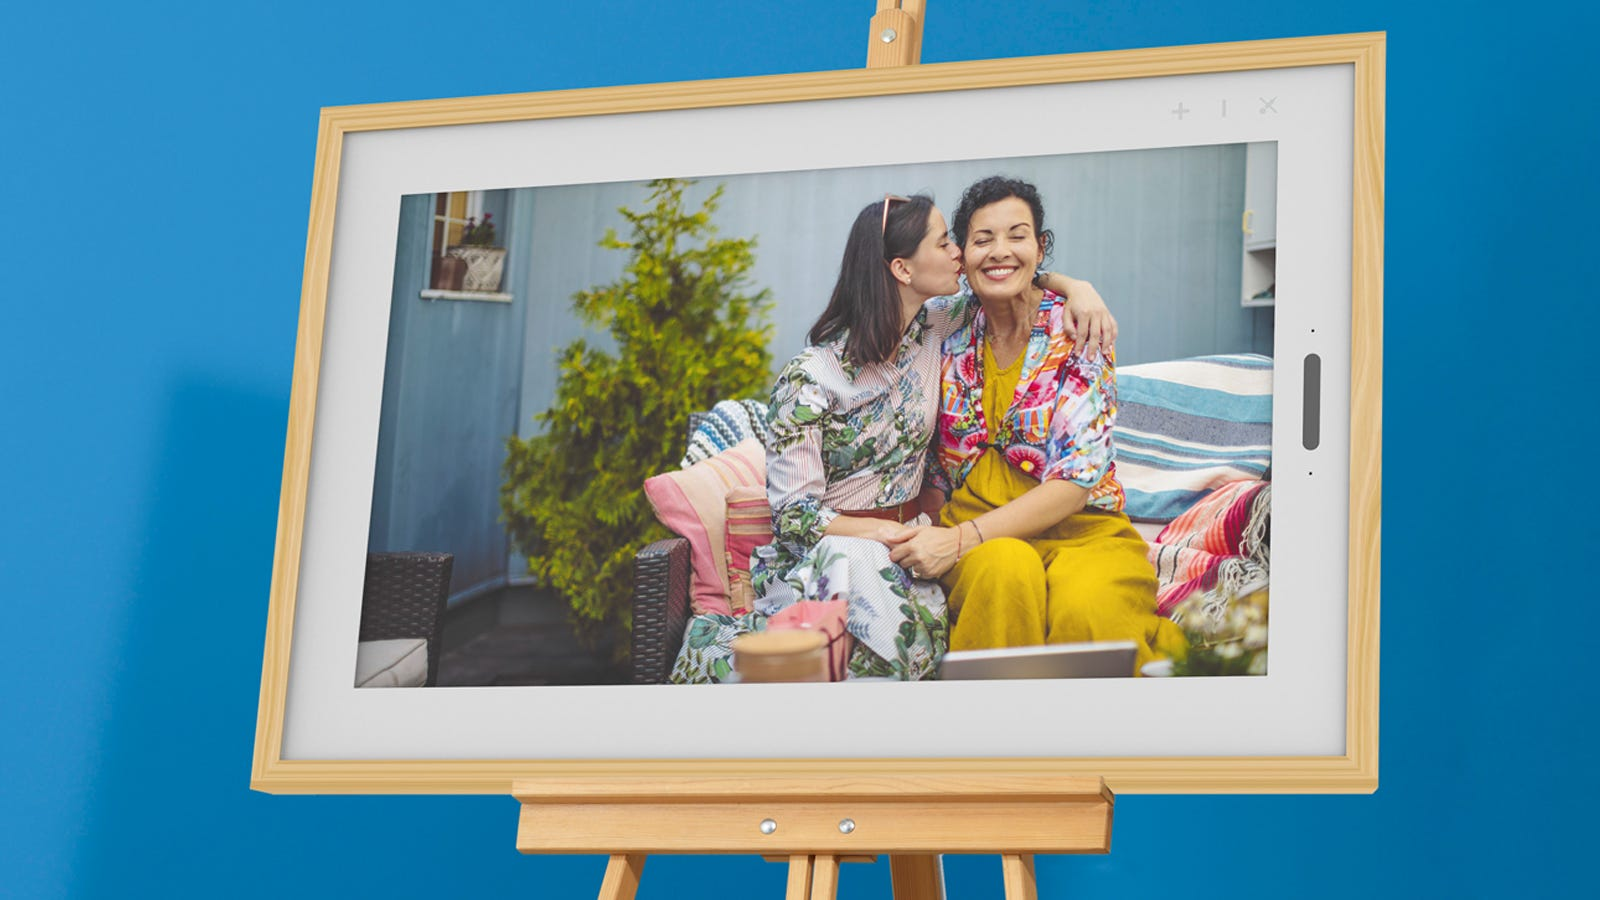 A close-up of the Lenovo Smart Frame, displaying a picture of a mother and daughter on a couch.